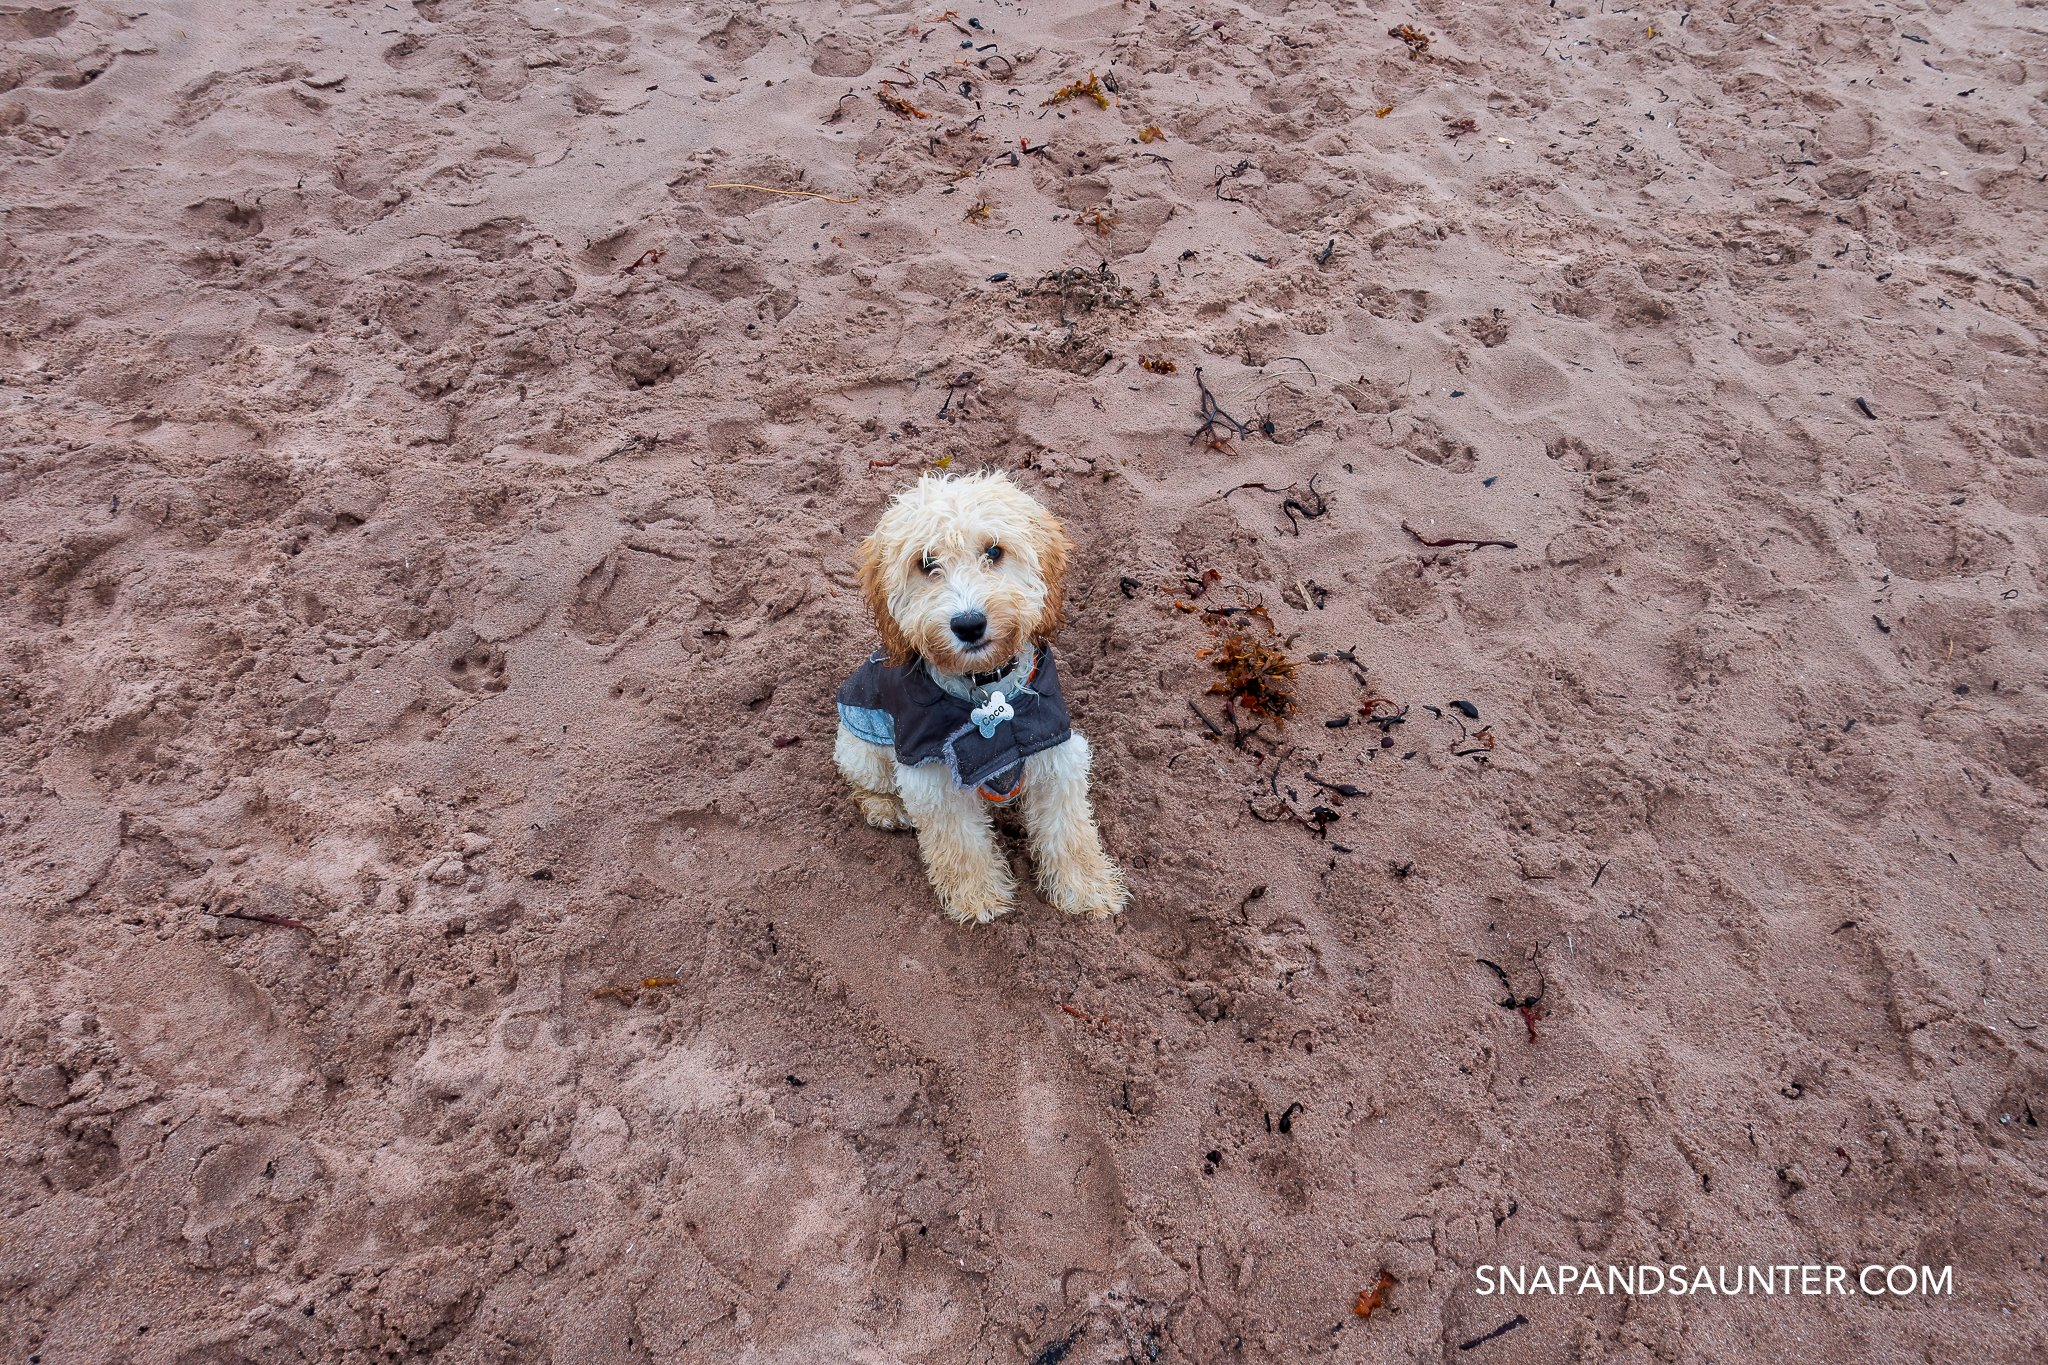 A puppy sitting on a red sand beach in the rain